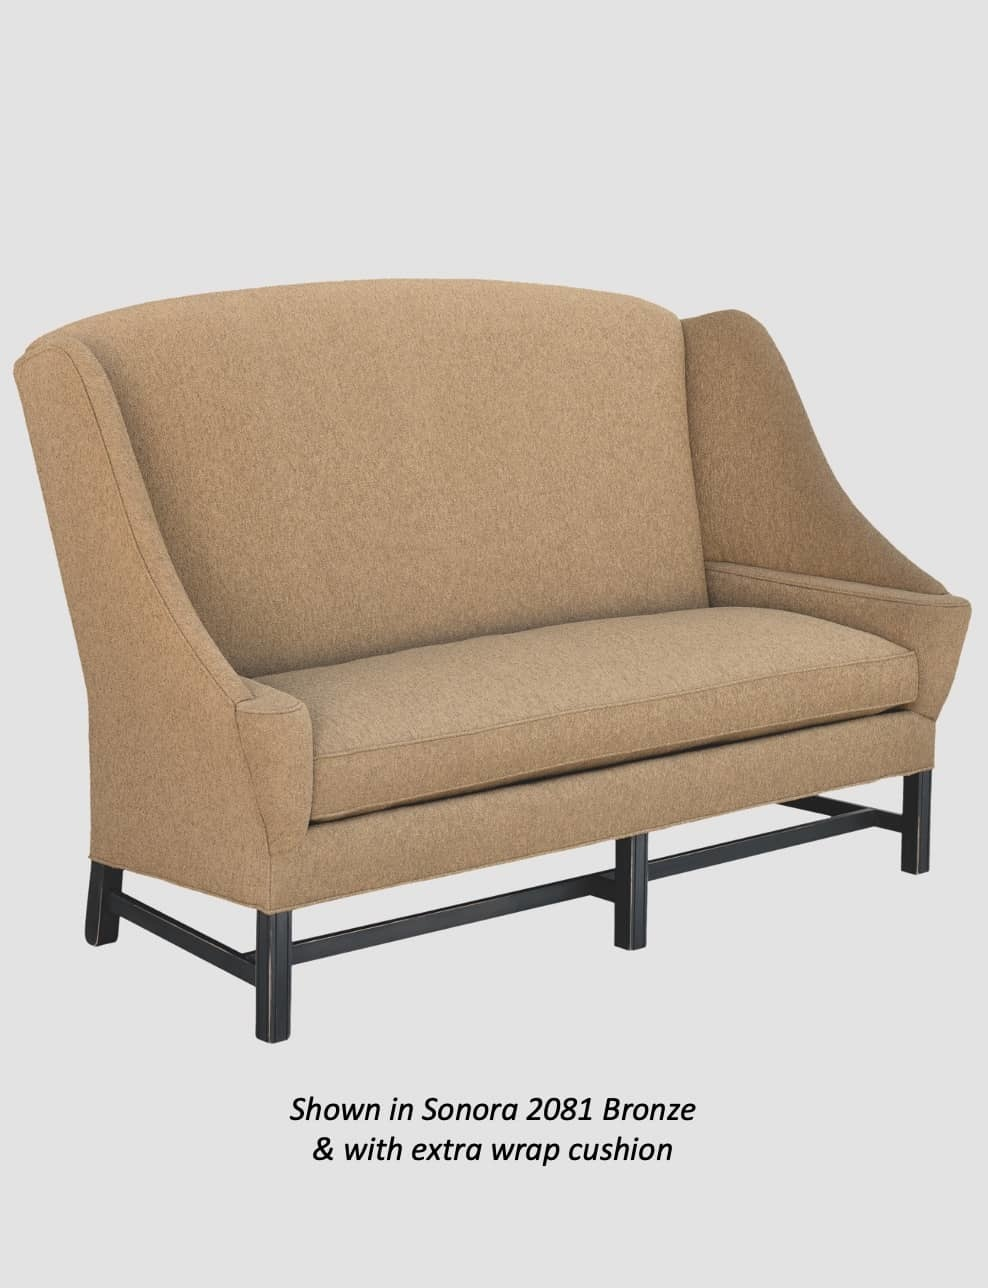 Town & Country Furnishings Cape Cod Sofa from the American Country Collection